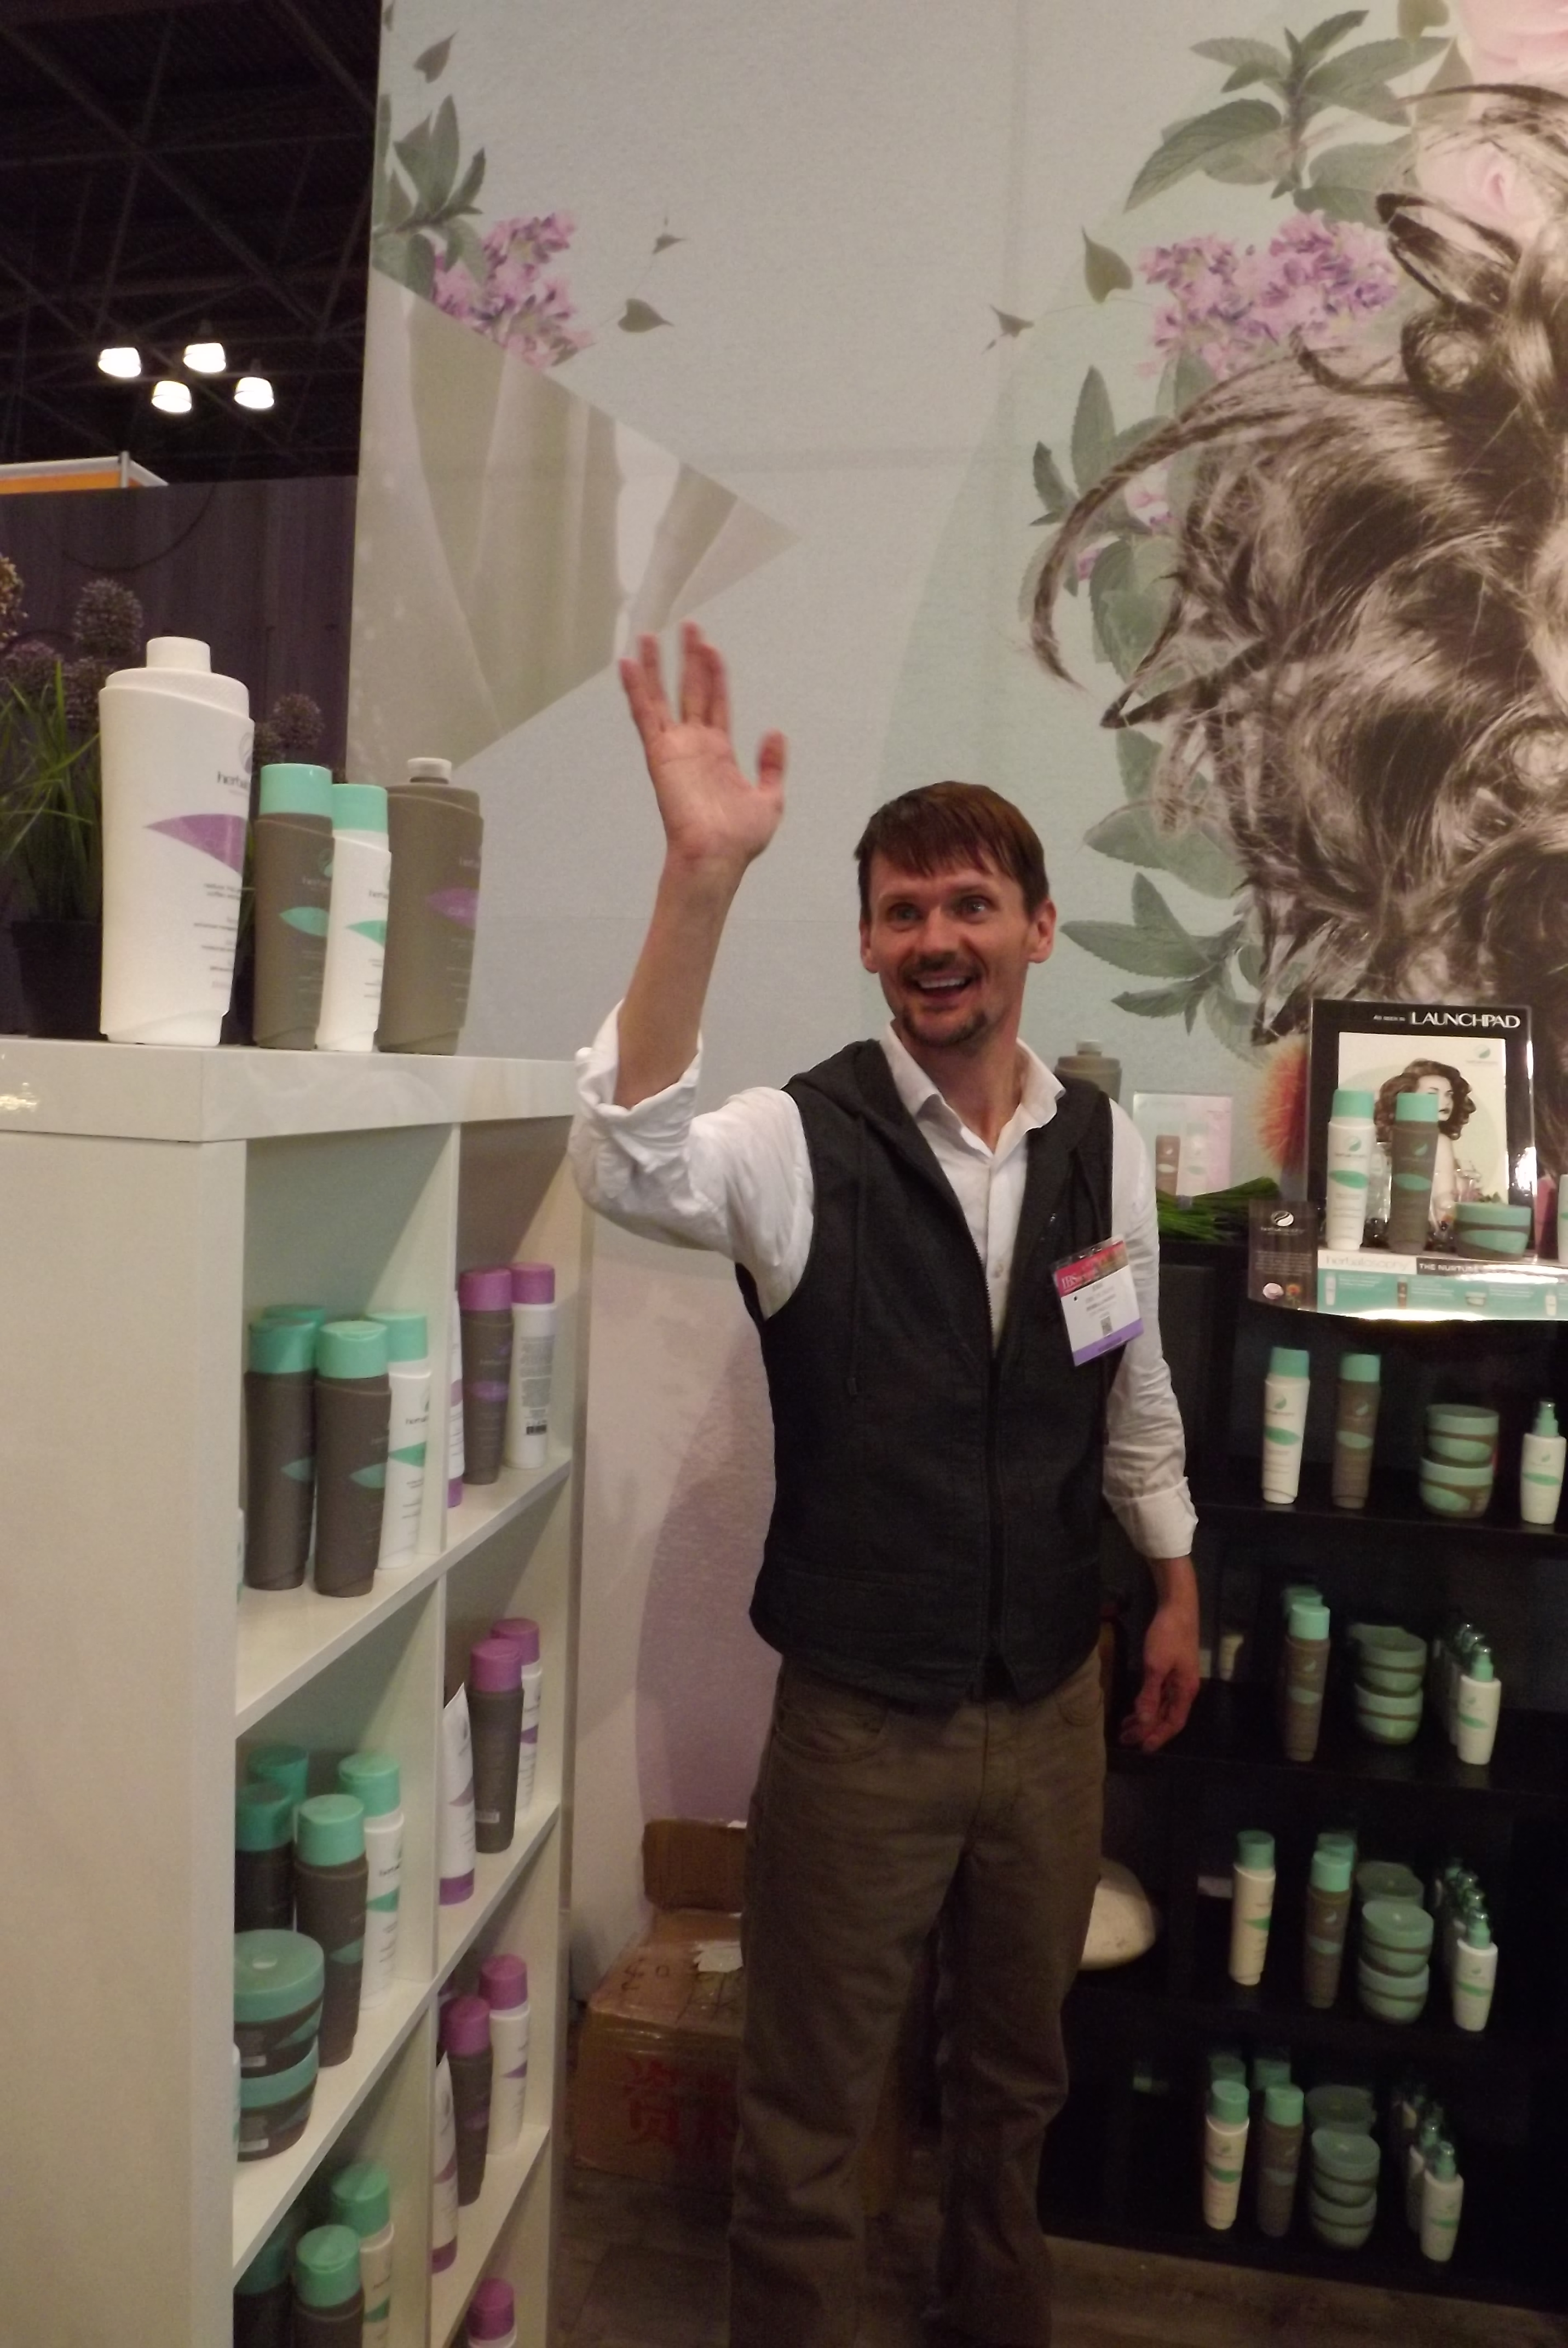 Herbalosophy Treats Lucky Salon Owner to IBS, New York & More